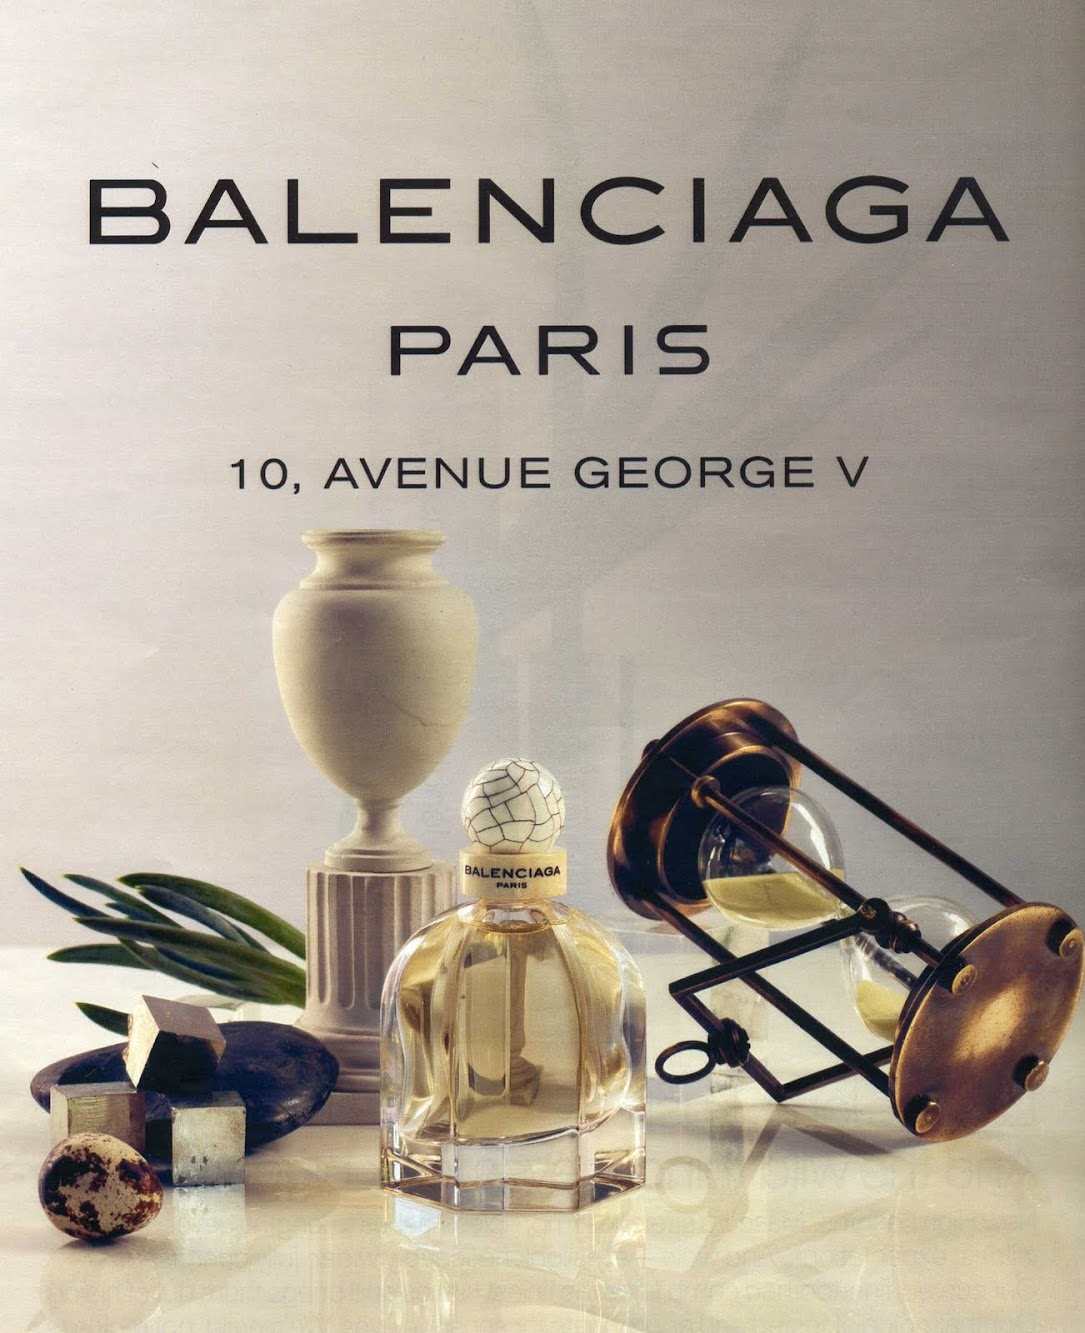 Paris by Balenciaga